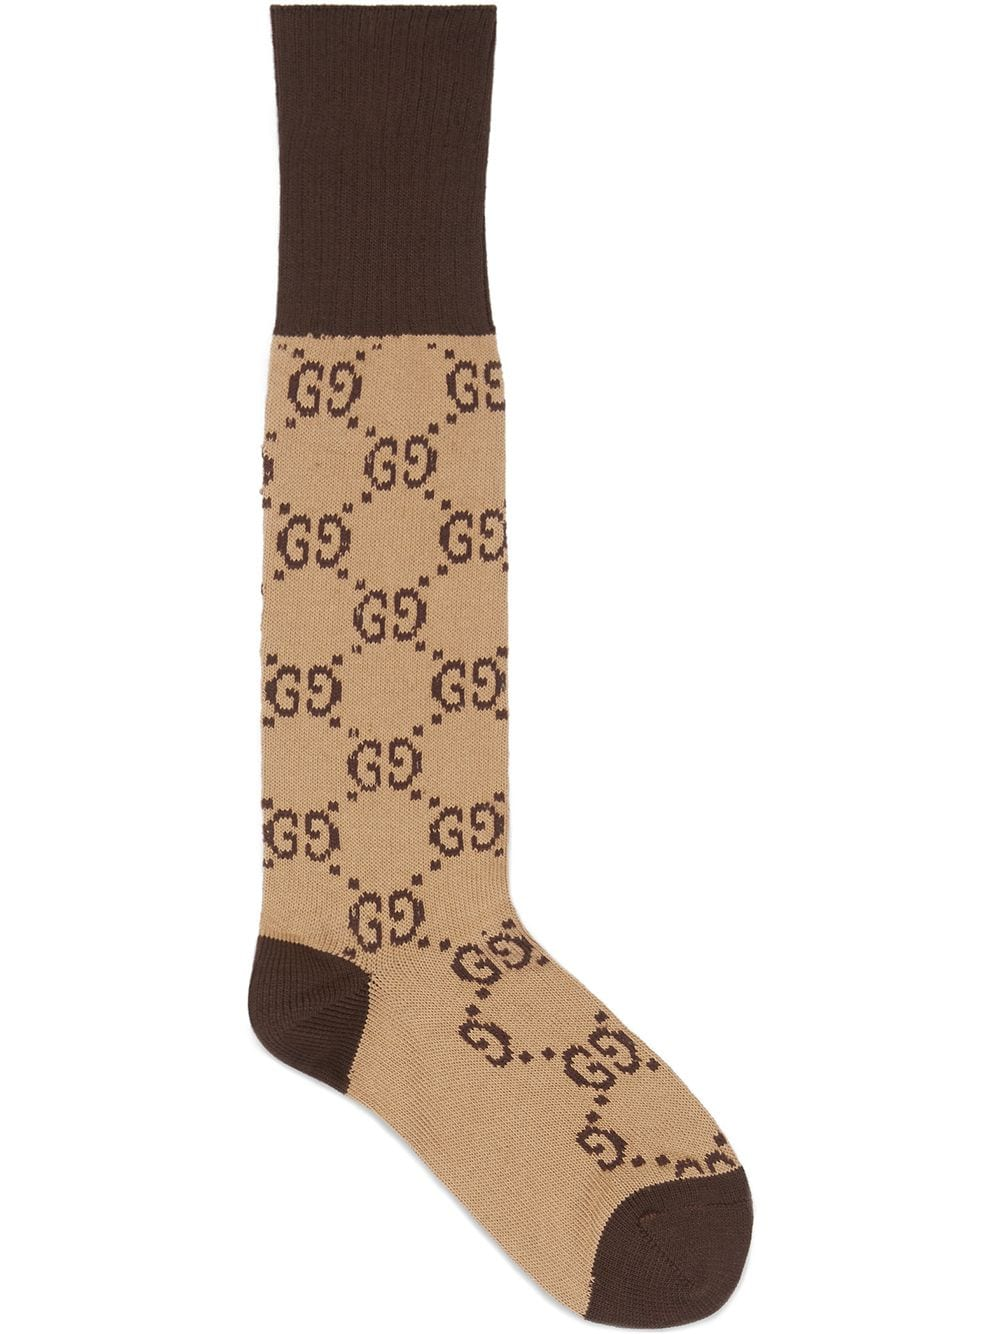 Gucci all over print brown and beige cotton socks GUCCI |  | 471093-4G5929764